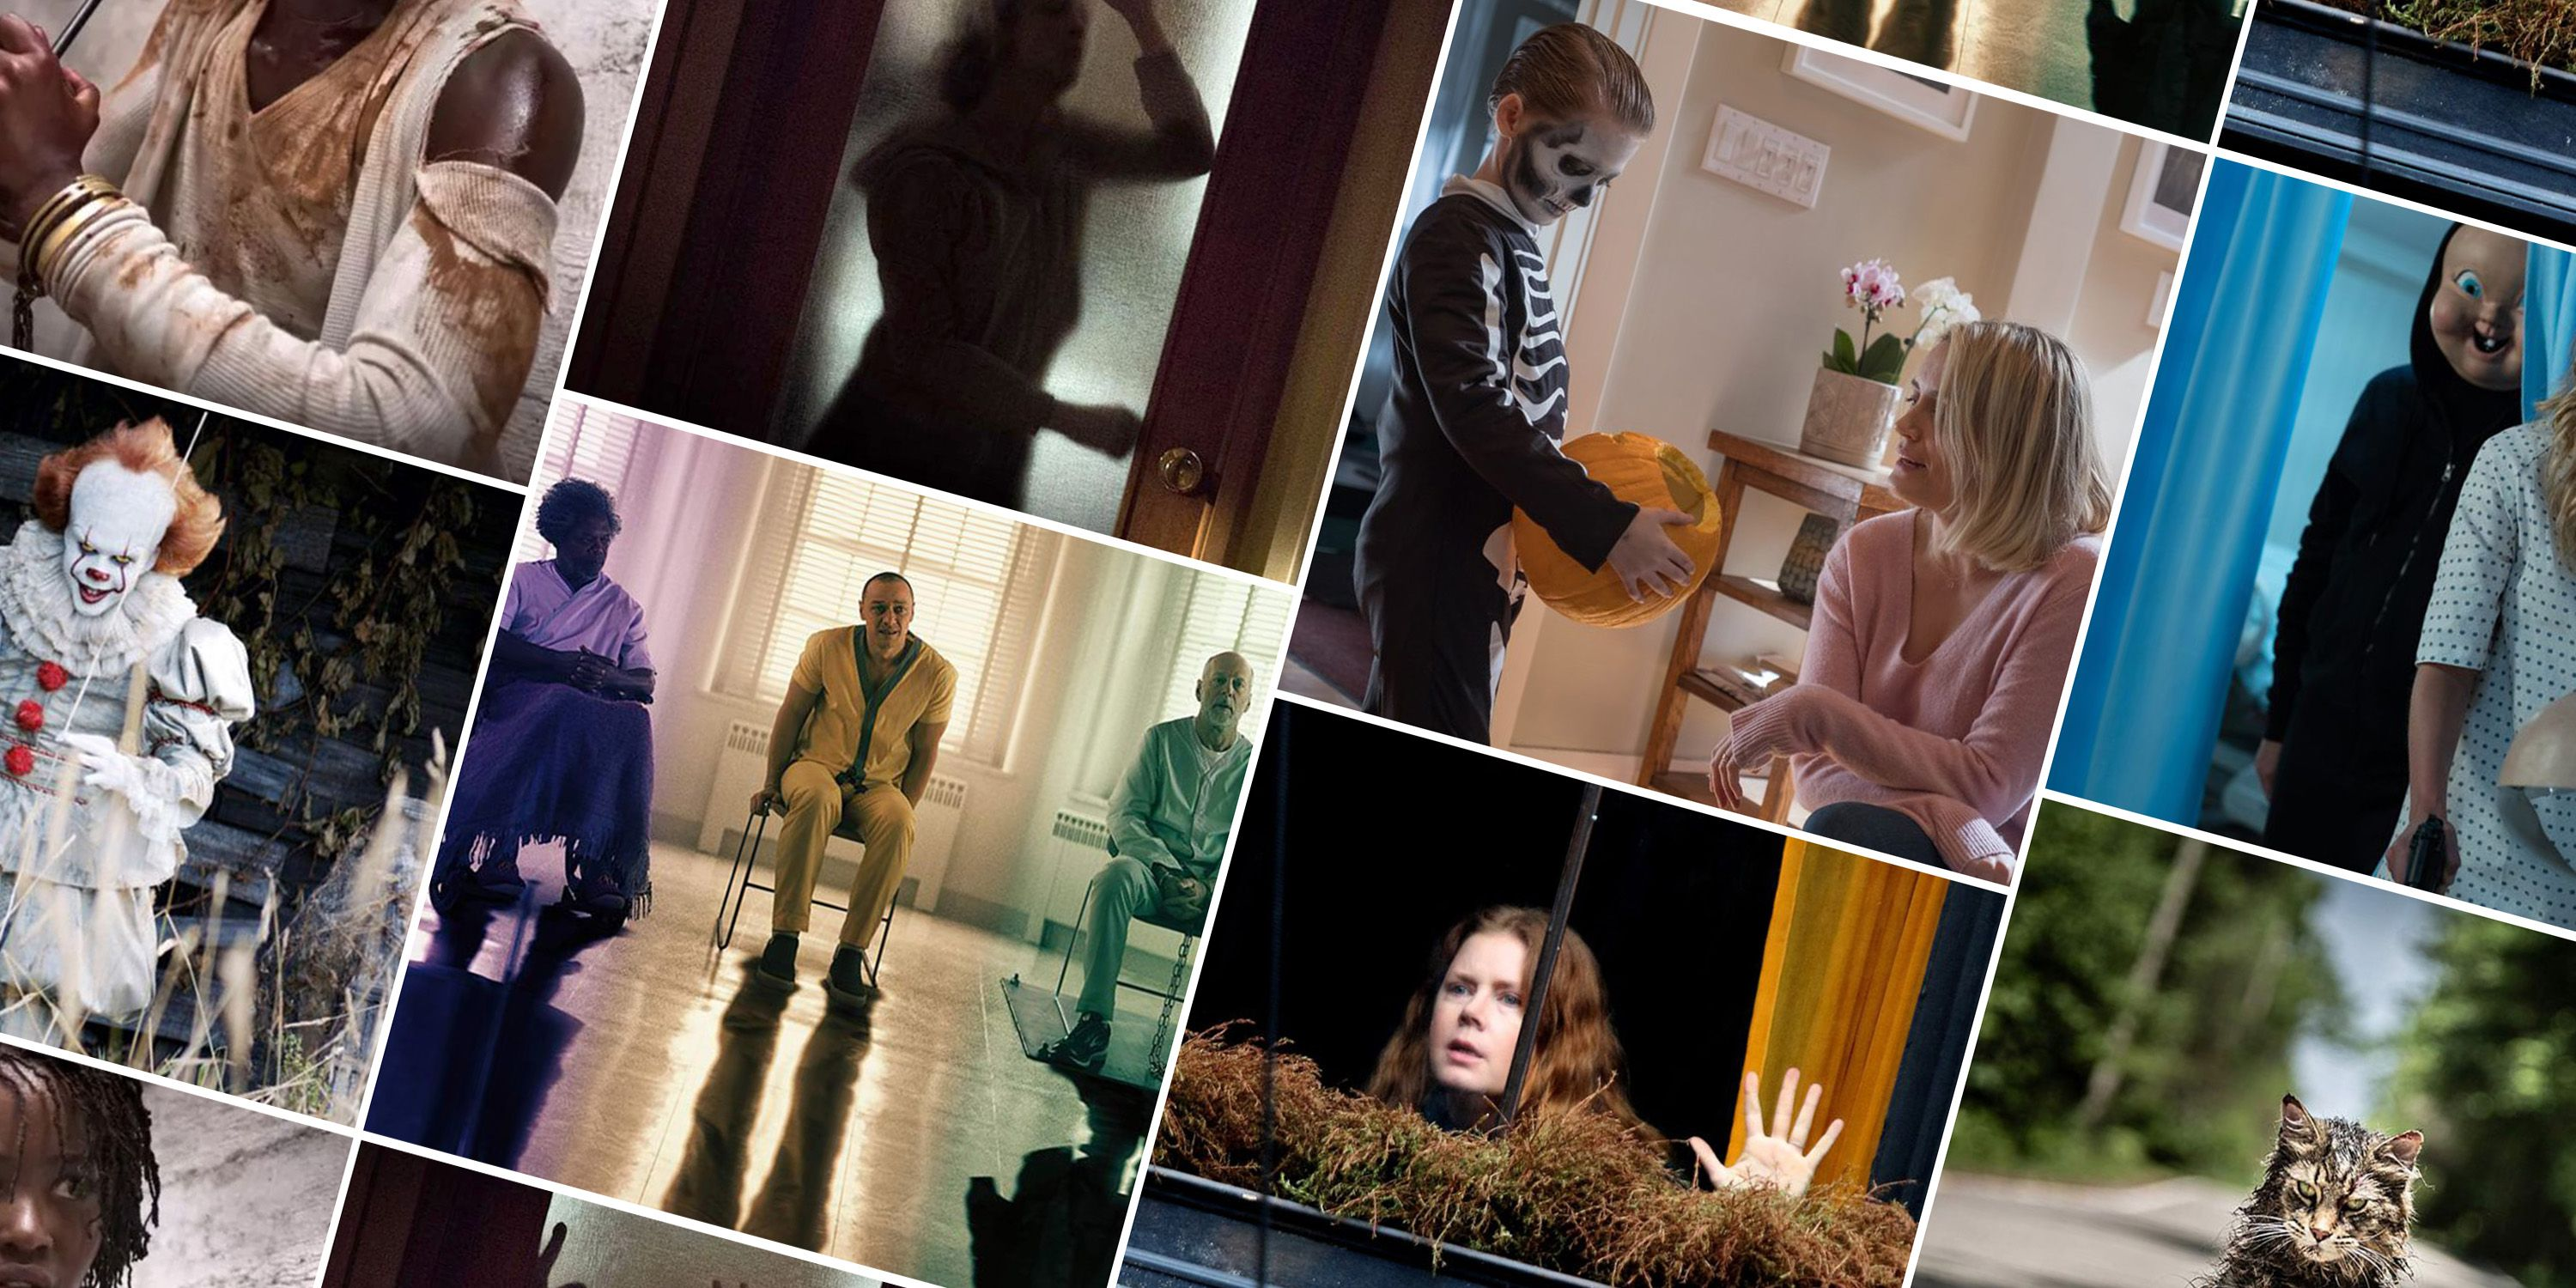 19 Best Horror Movies of 2019 - Scariest Films of the Year